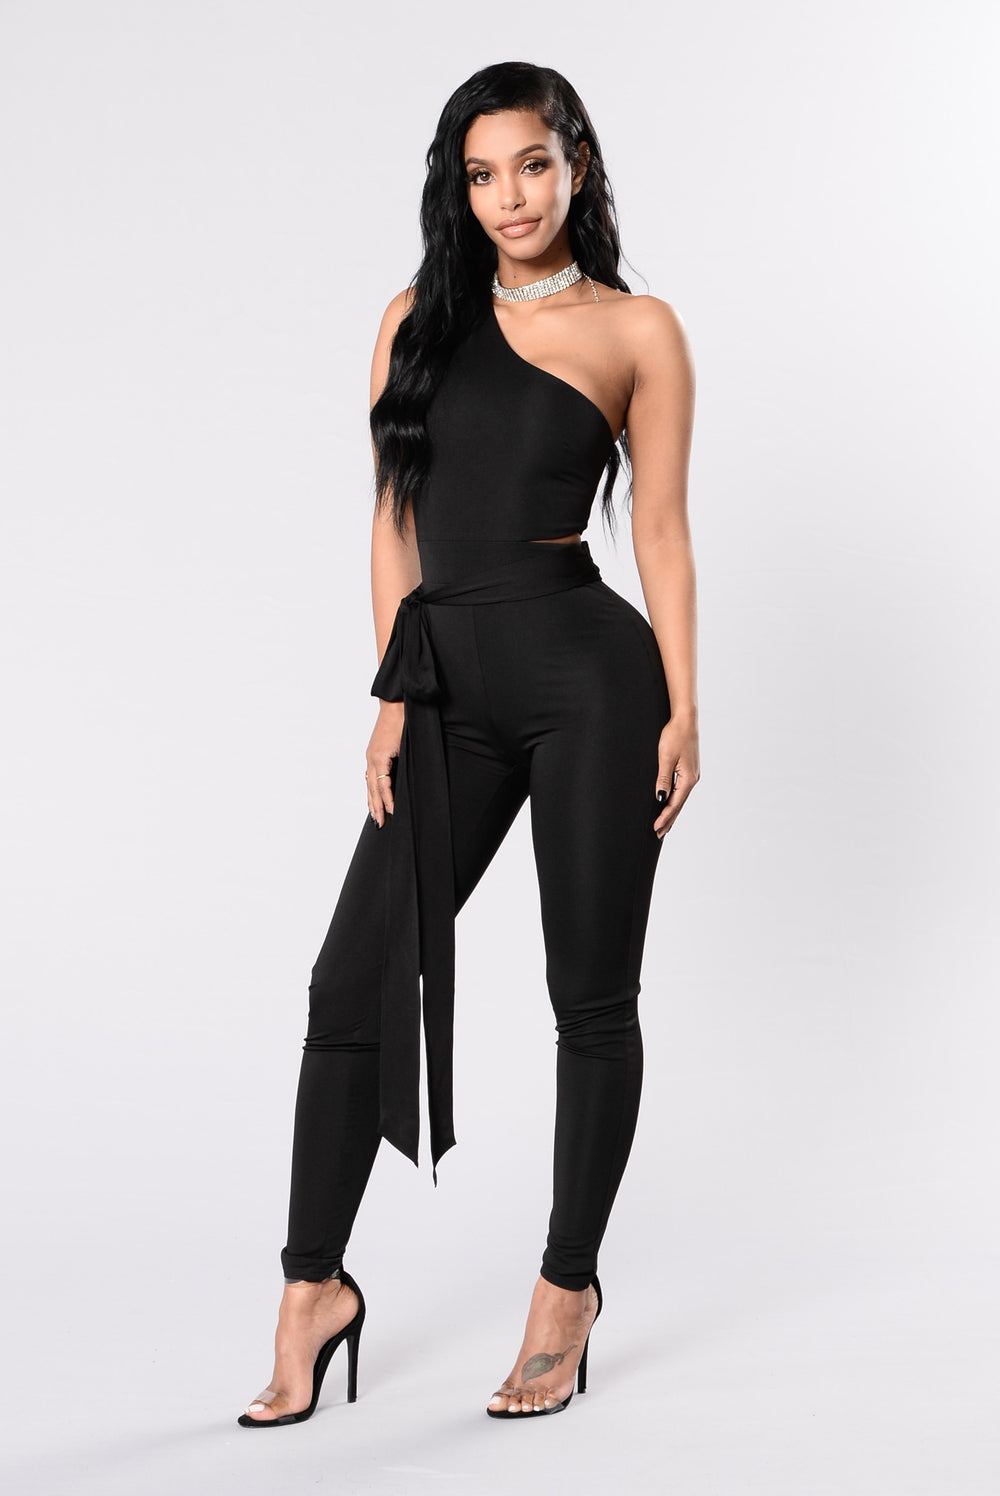 You Need To Cut It Jumpsuit - Black